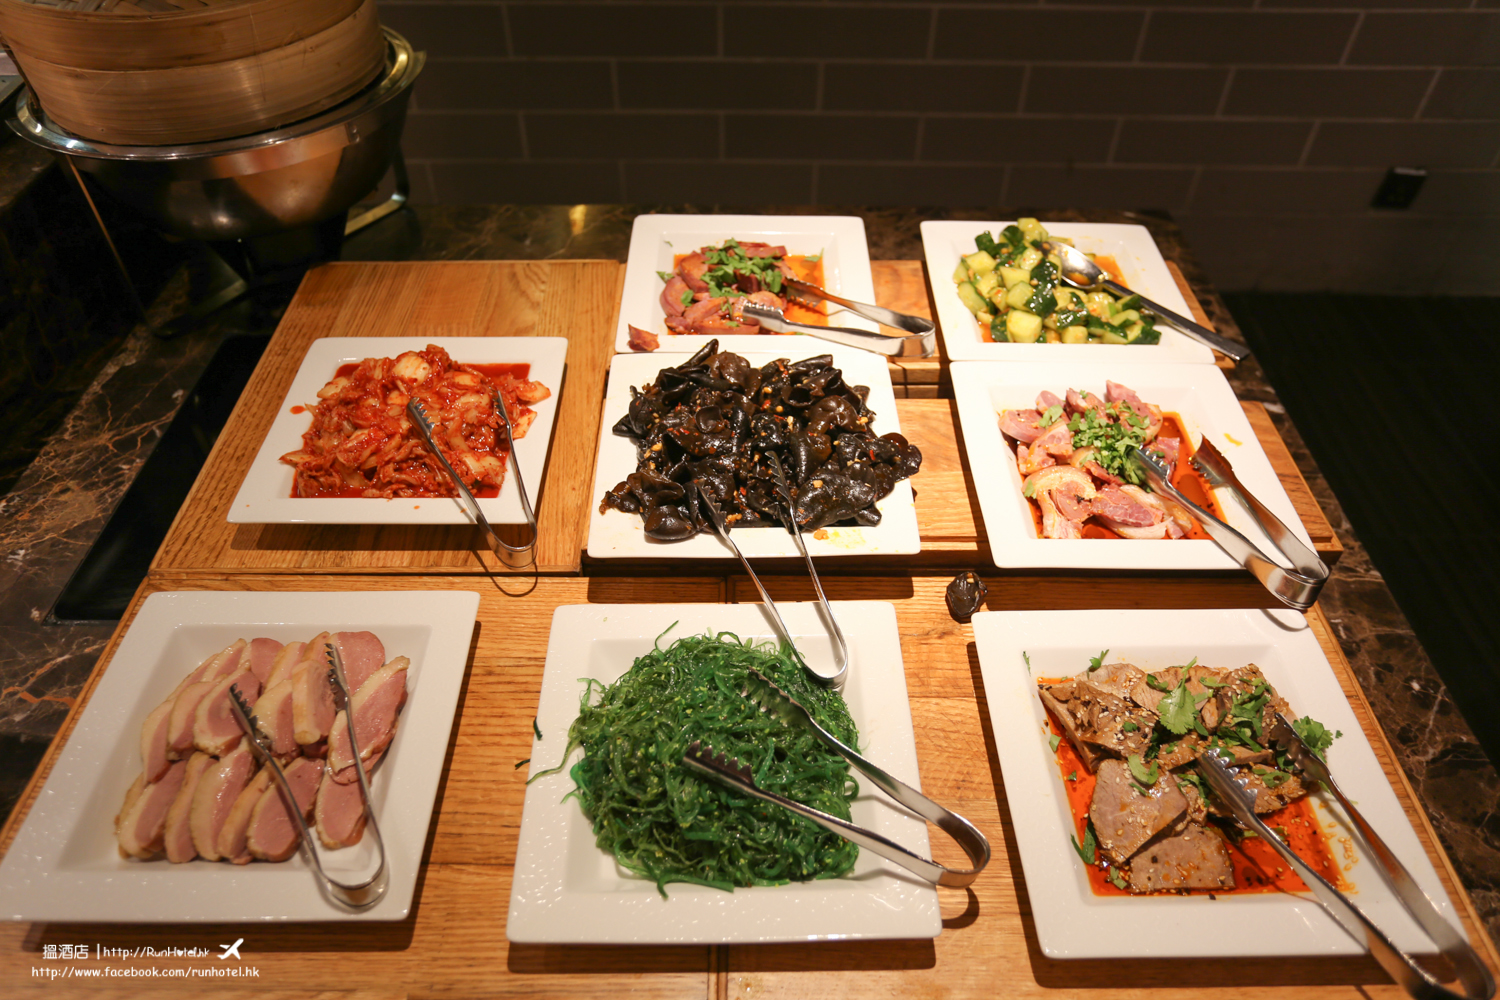 Macau JW Marriott Buffet (32)